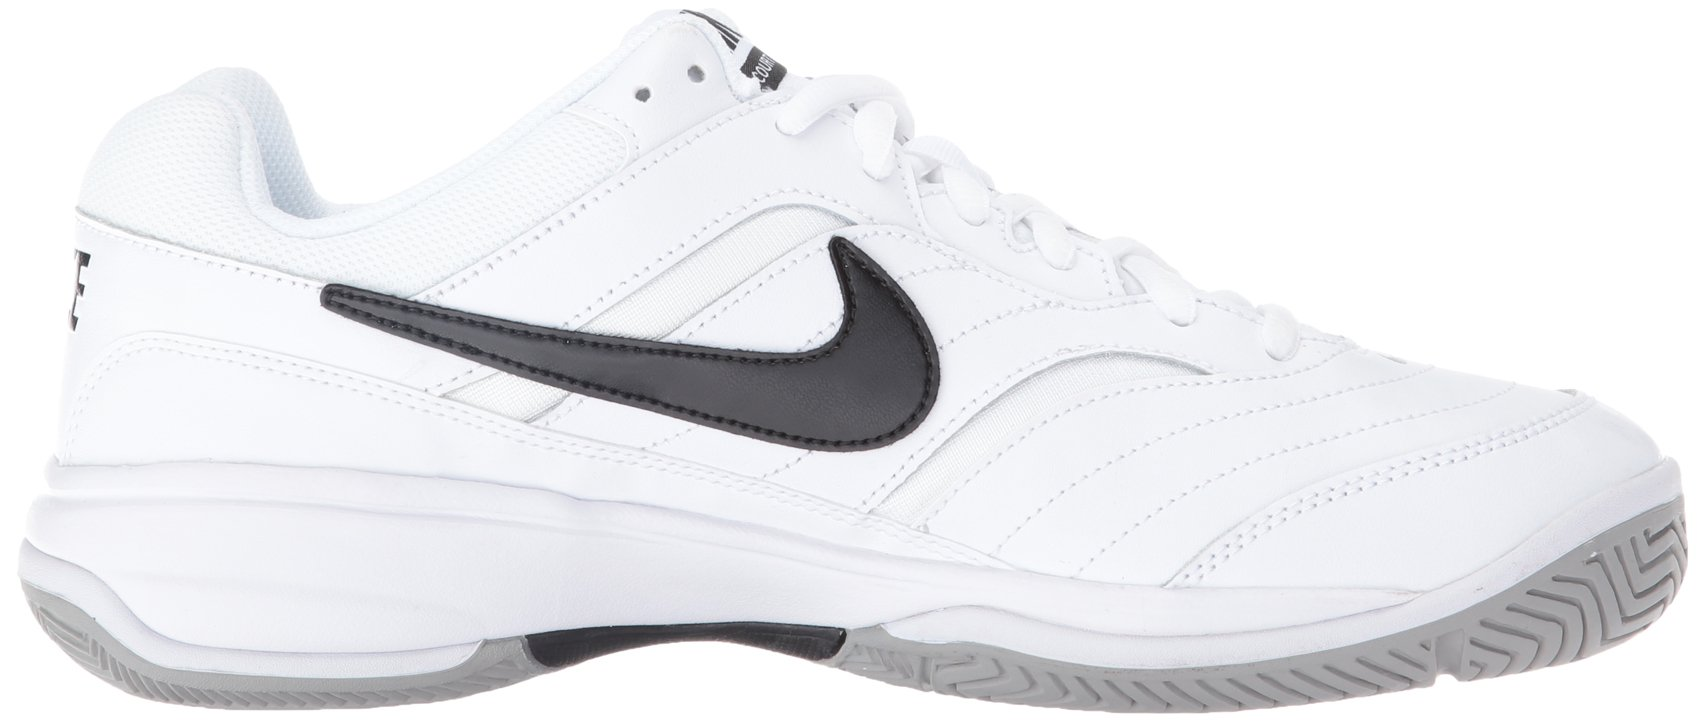 NIKE Men's Court Lite Tennis Shoe, White/Medium Grey/Black, 6.5 D(M) US by Nike (Image #7)